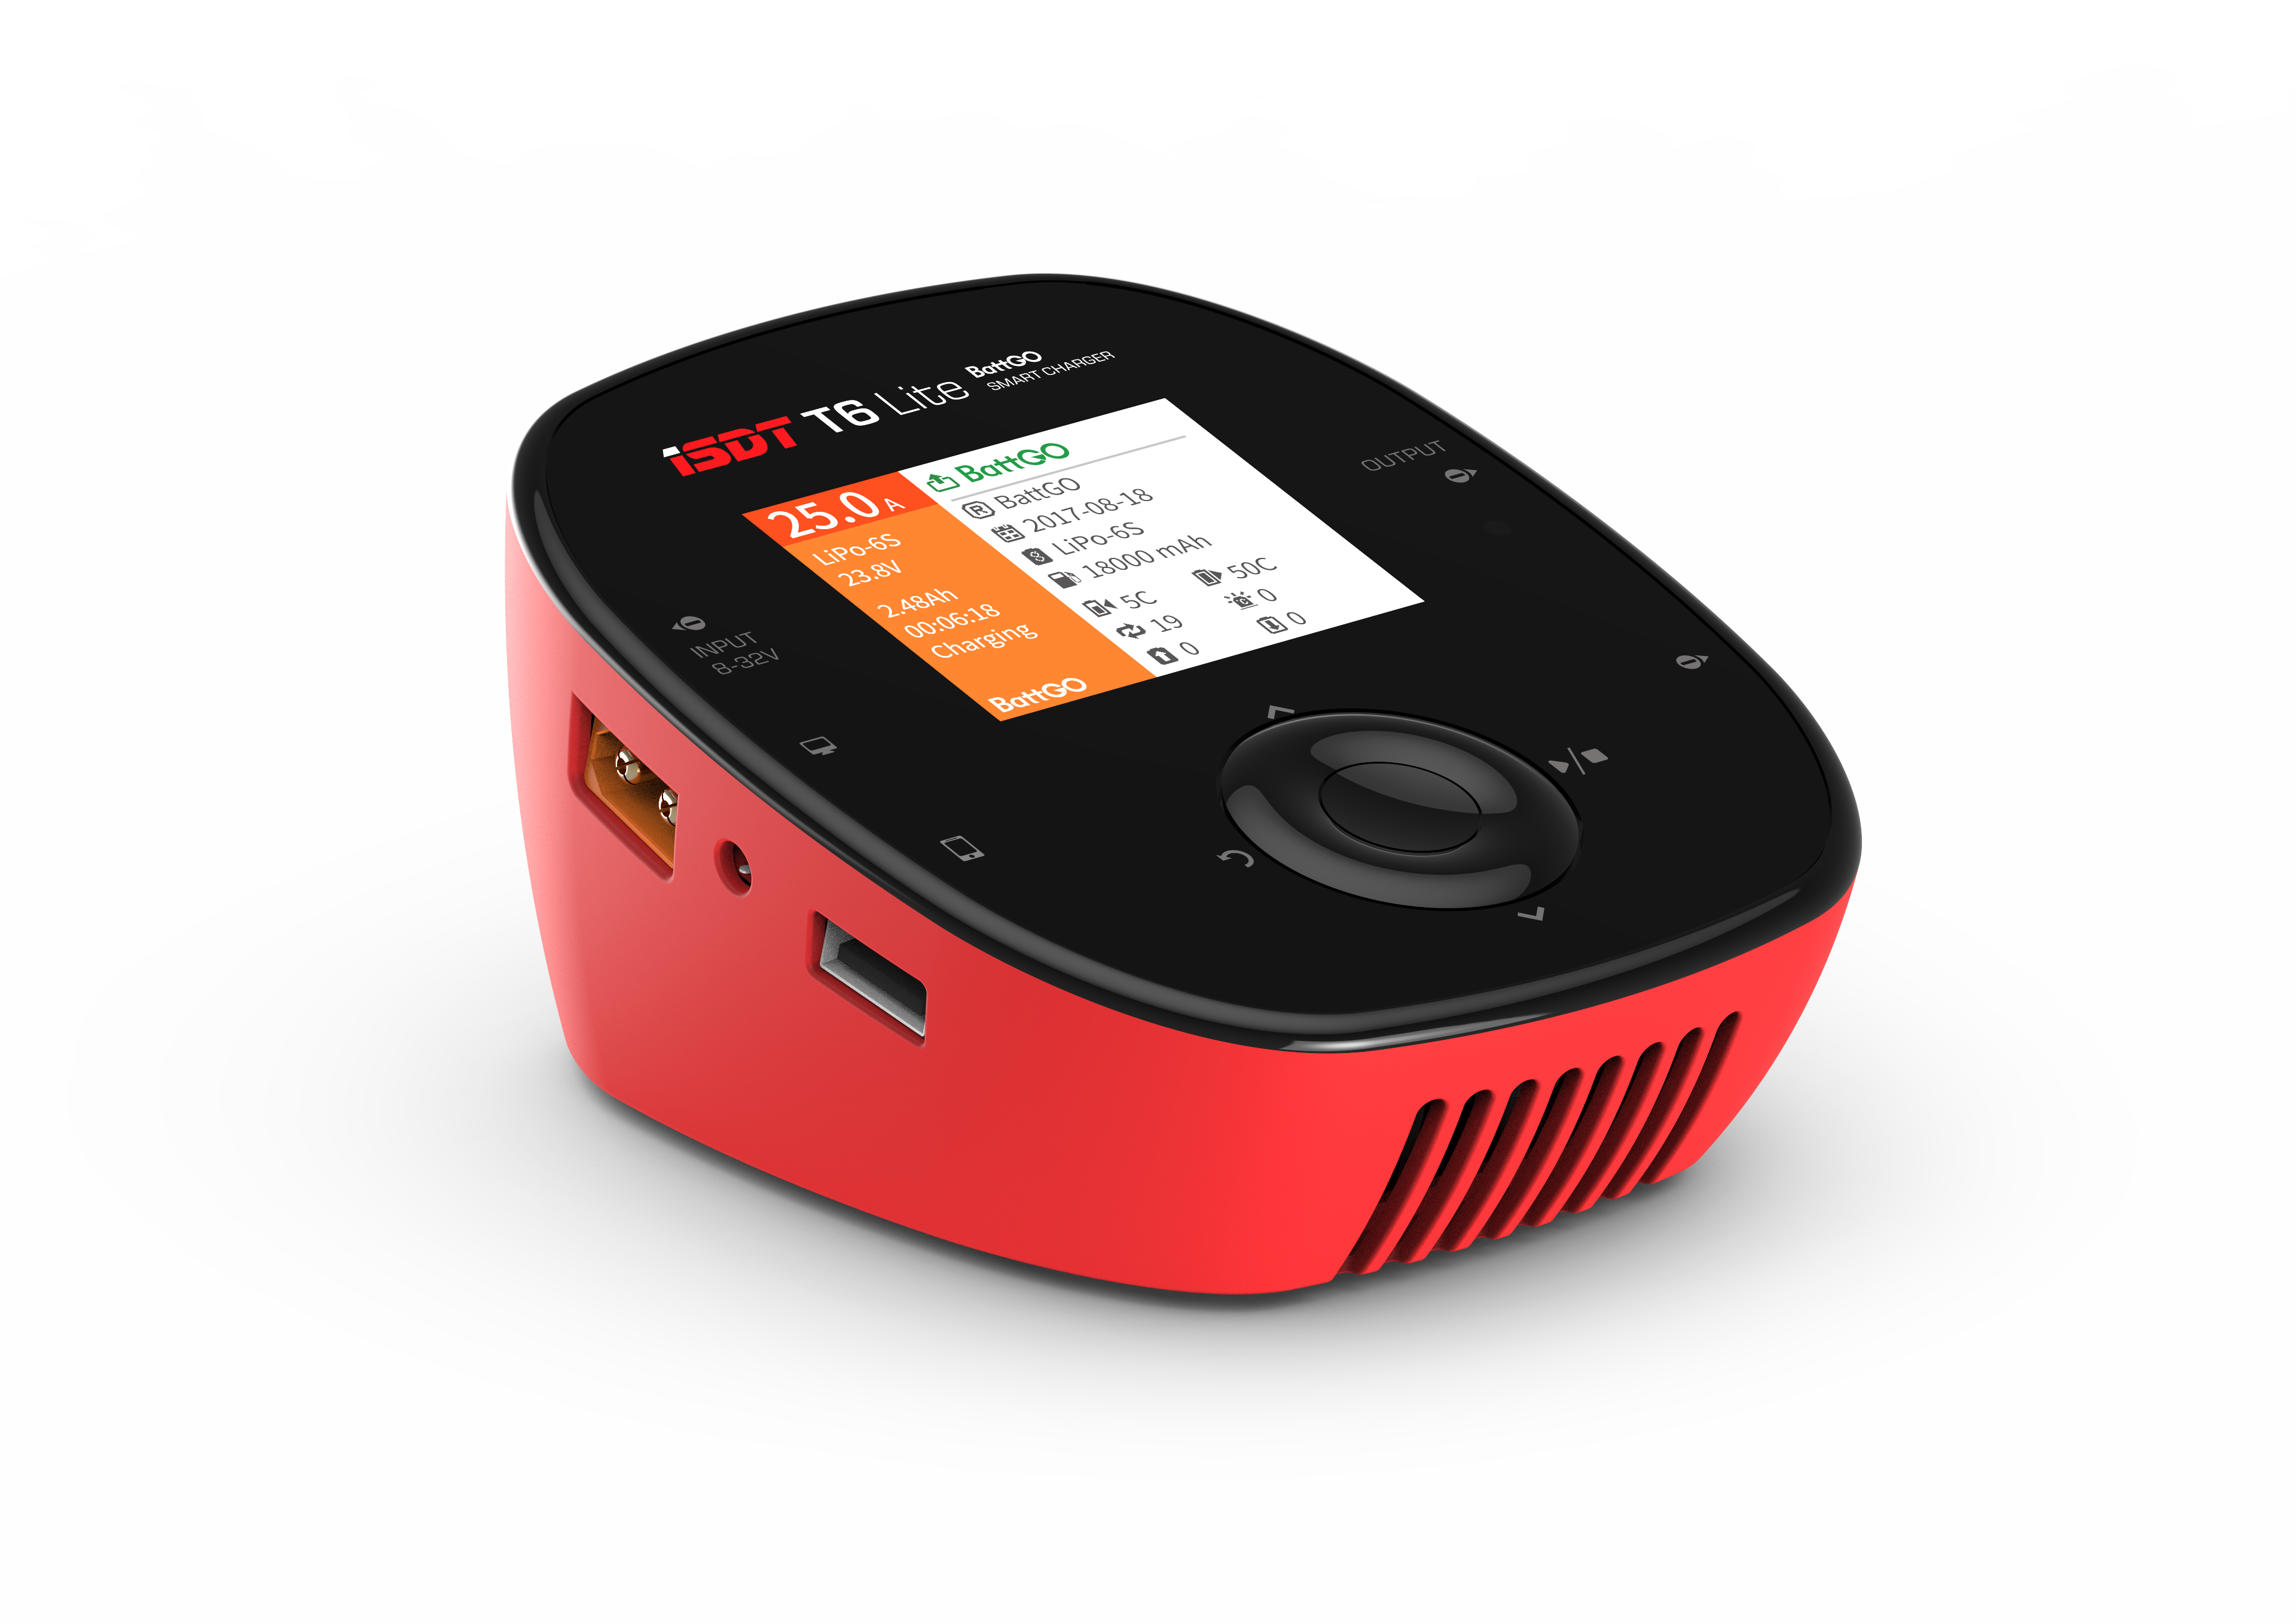 Details about RC iSDT T6 Lite Charger (600W) EXCLUSIVE to HobbyKing!